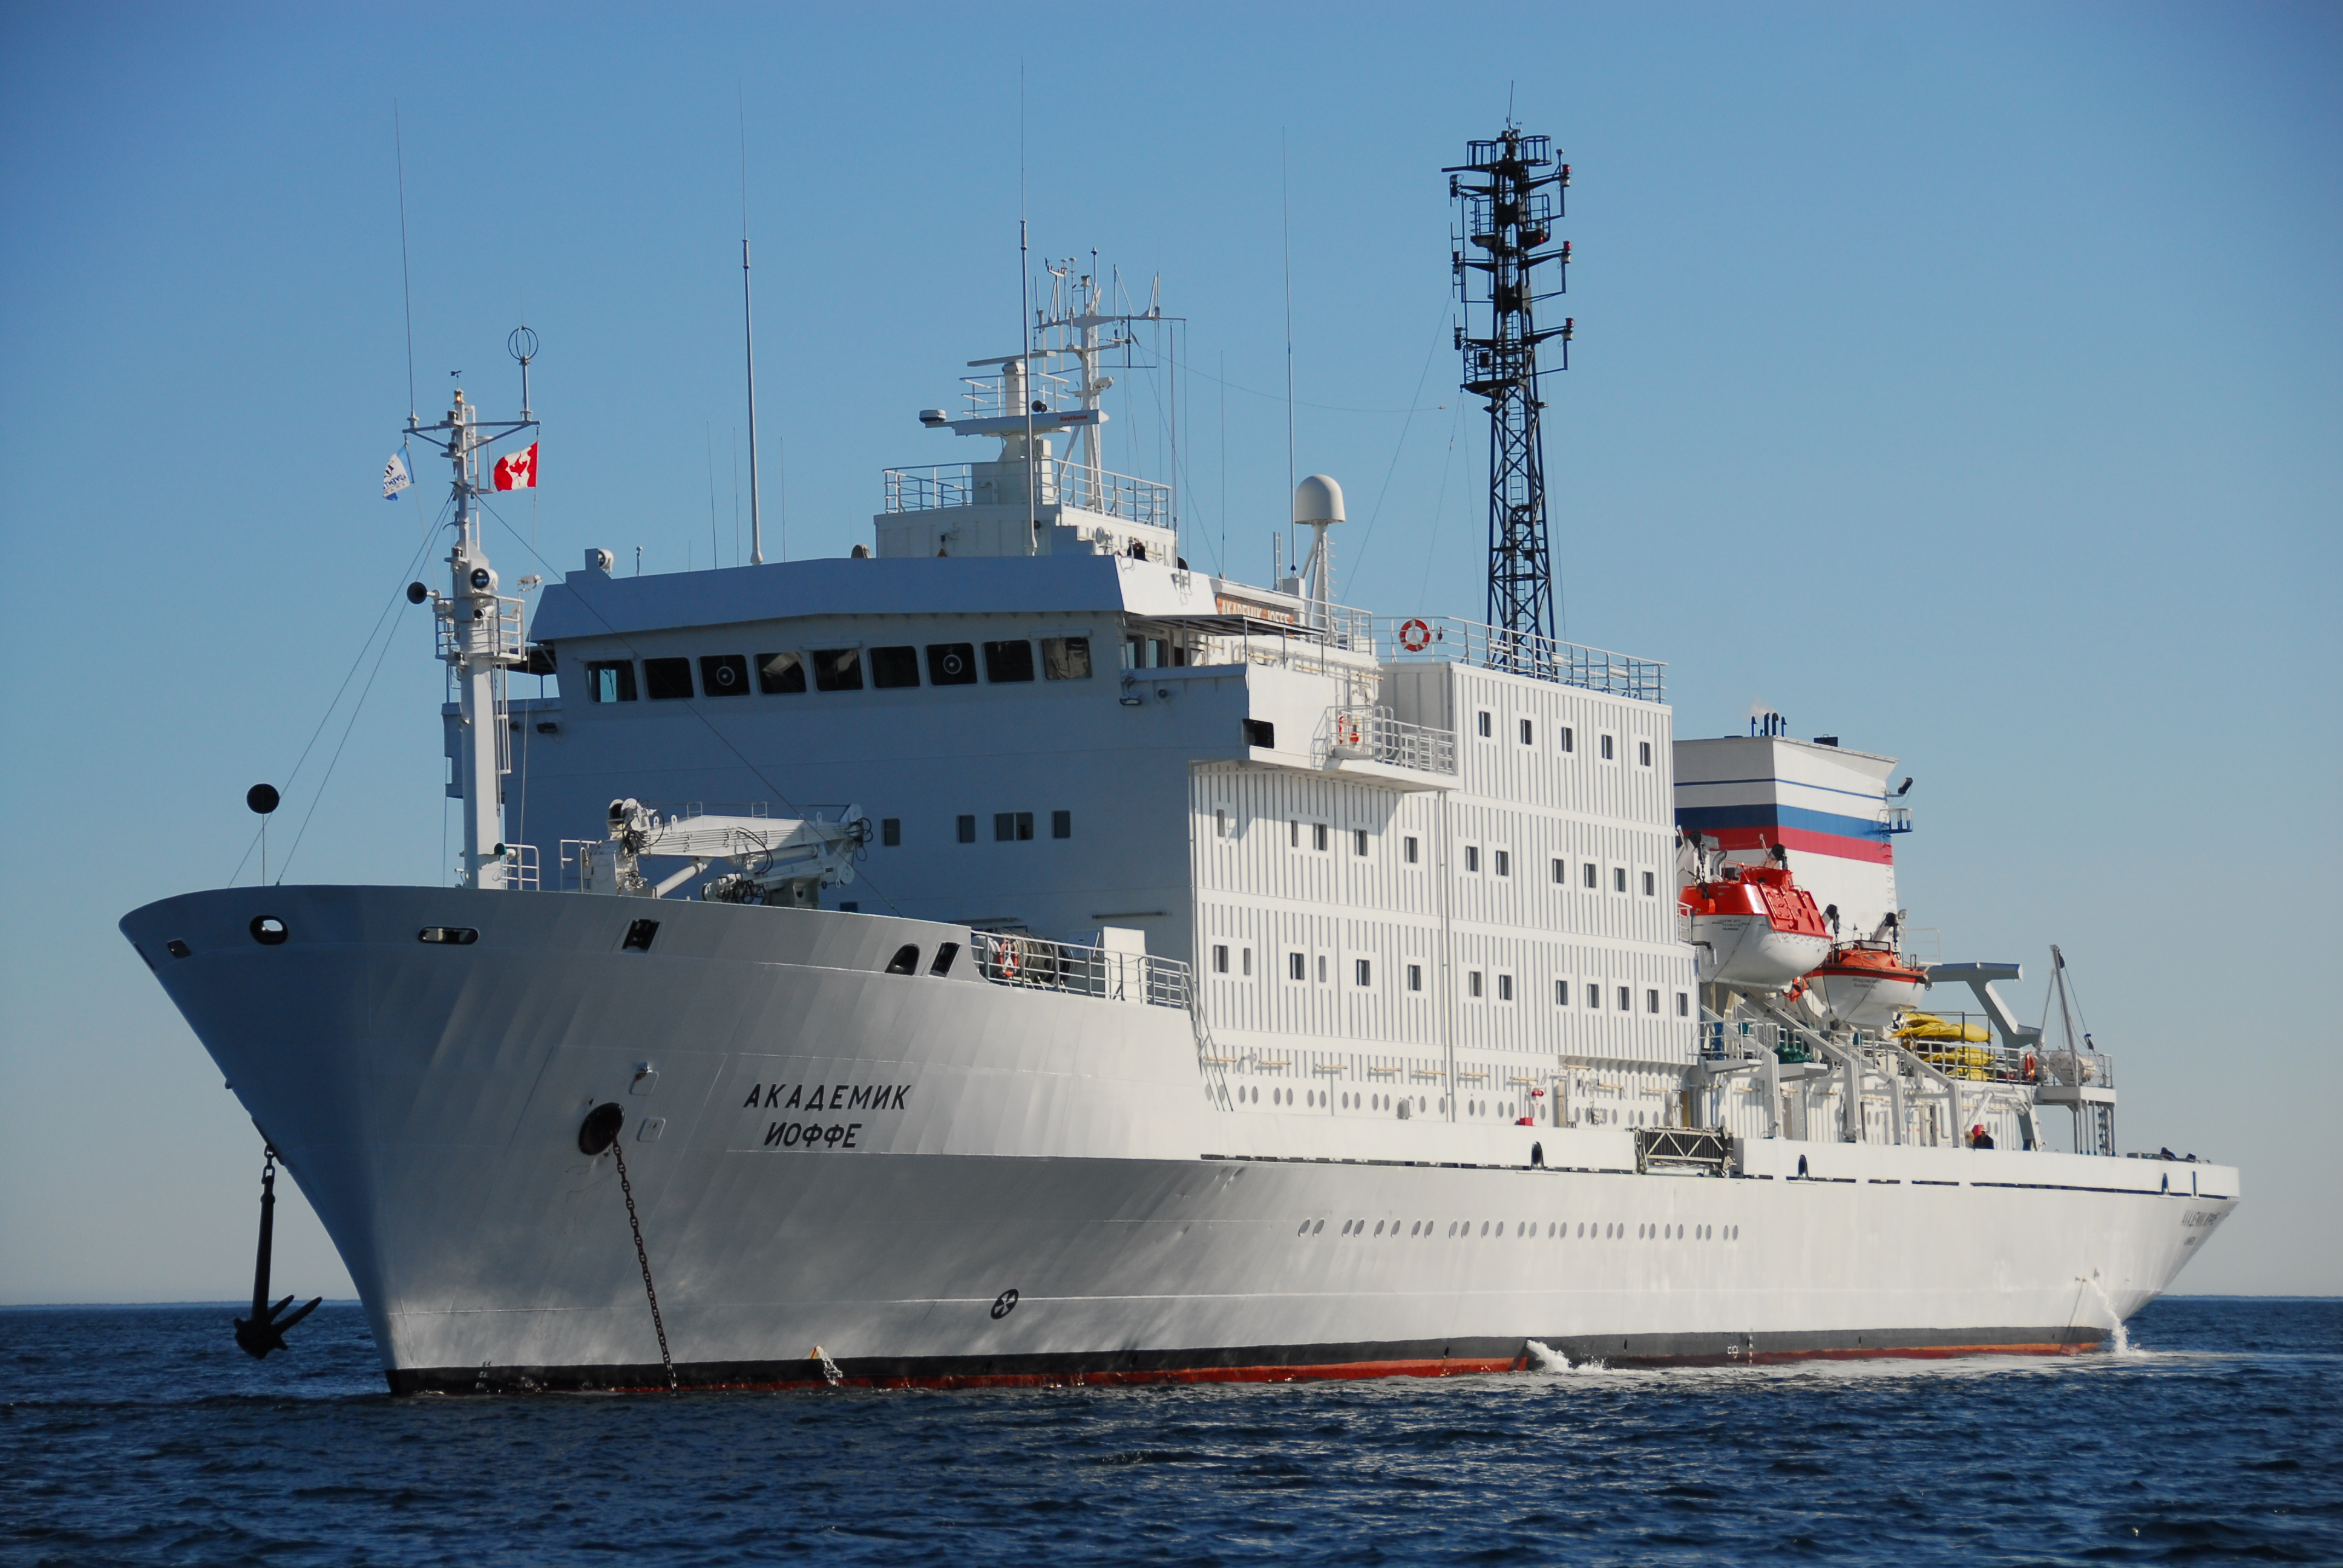 Akademik Ioffe, the ship servicing Quest for the Antarctic Circle (Akademik Ioffe)